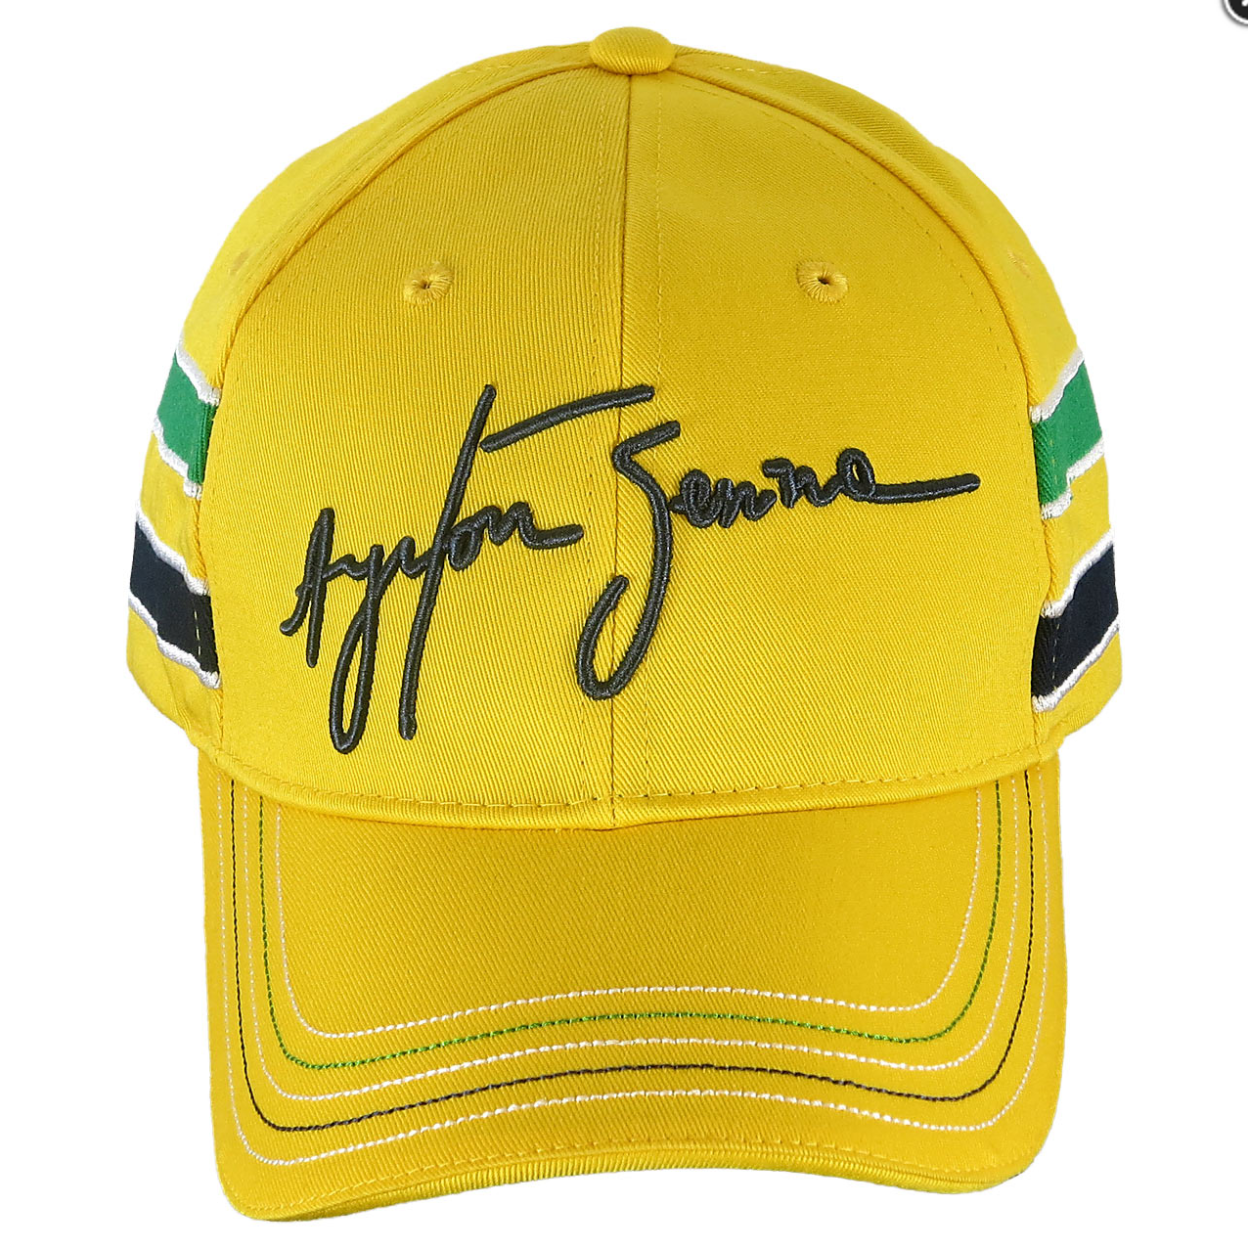 Ayrton Senna Yellow Helmet Hat by Ayrton Senna Shop ...